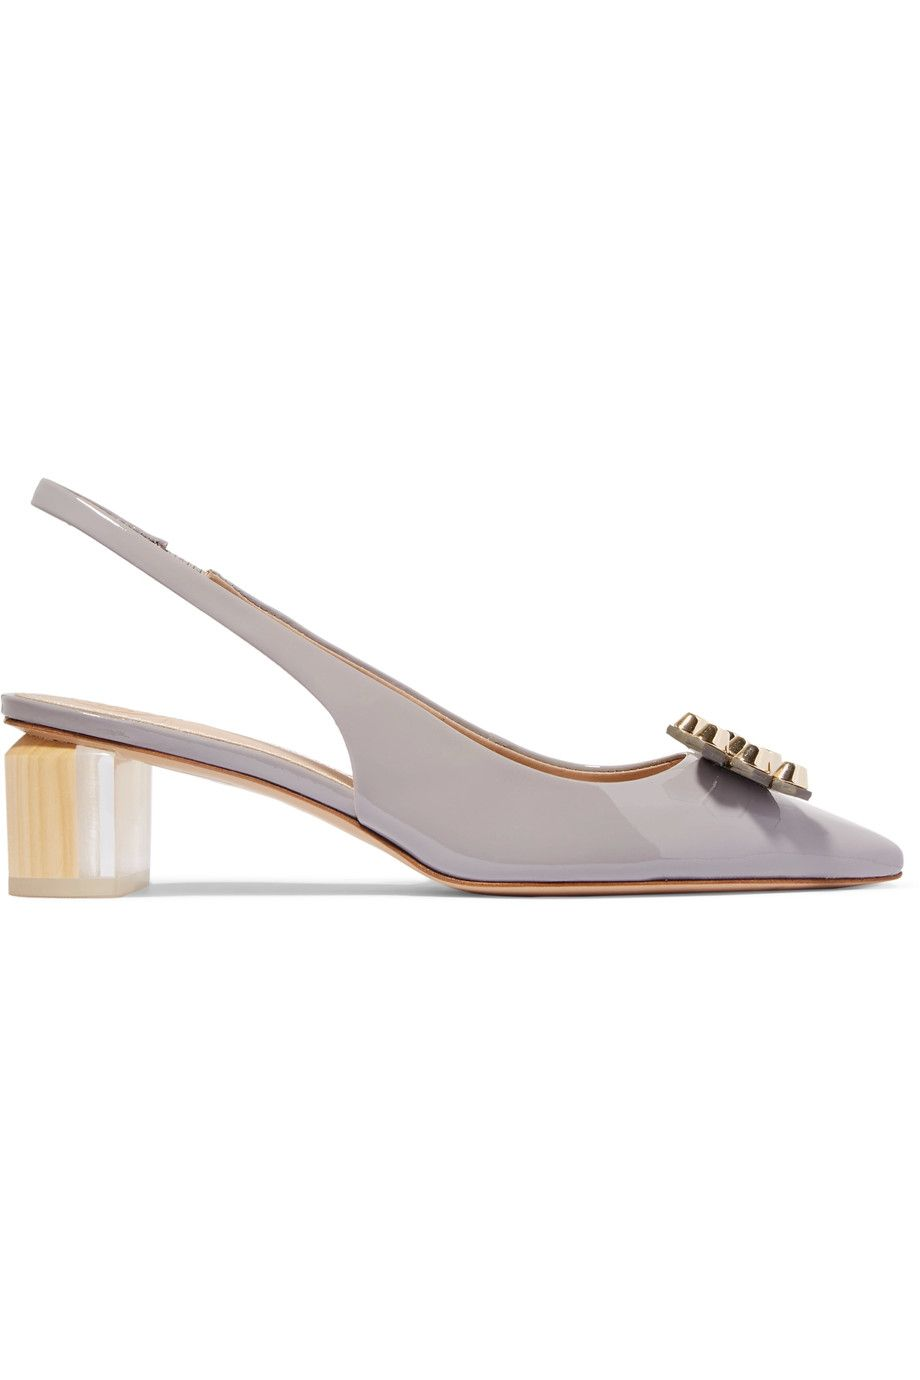 TORY BURCH Aurora embellished patent-leather slingback pumps. #toryburch # shoes #pumps